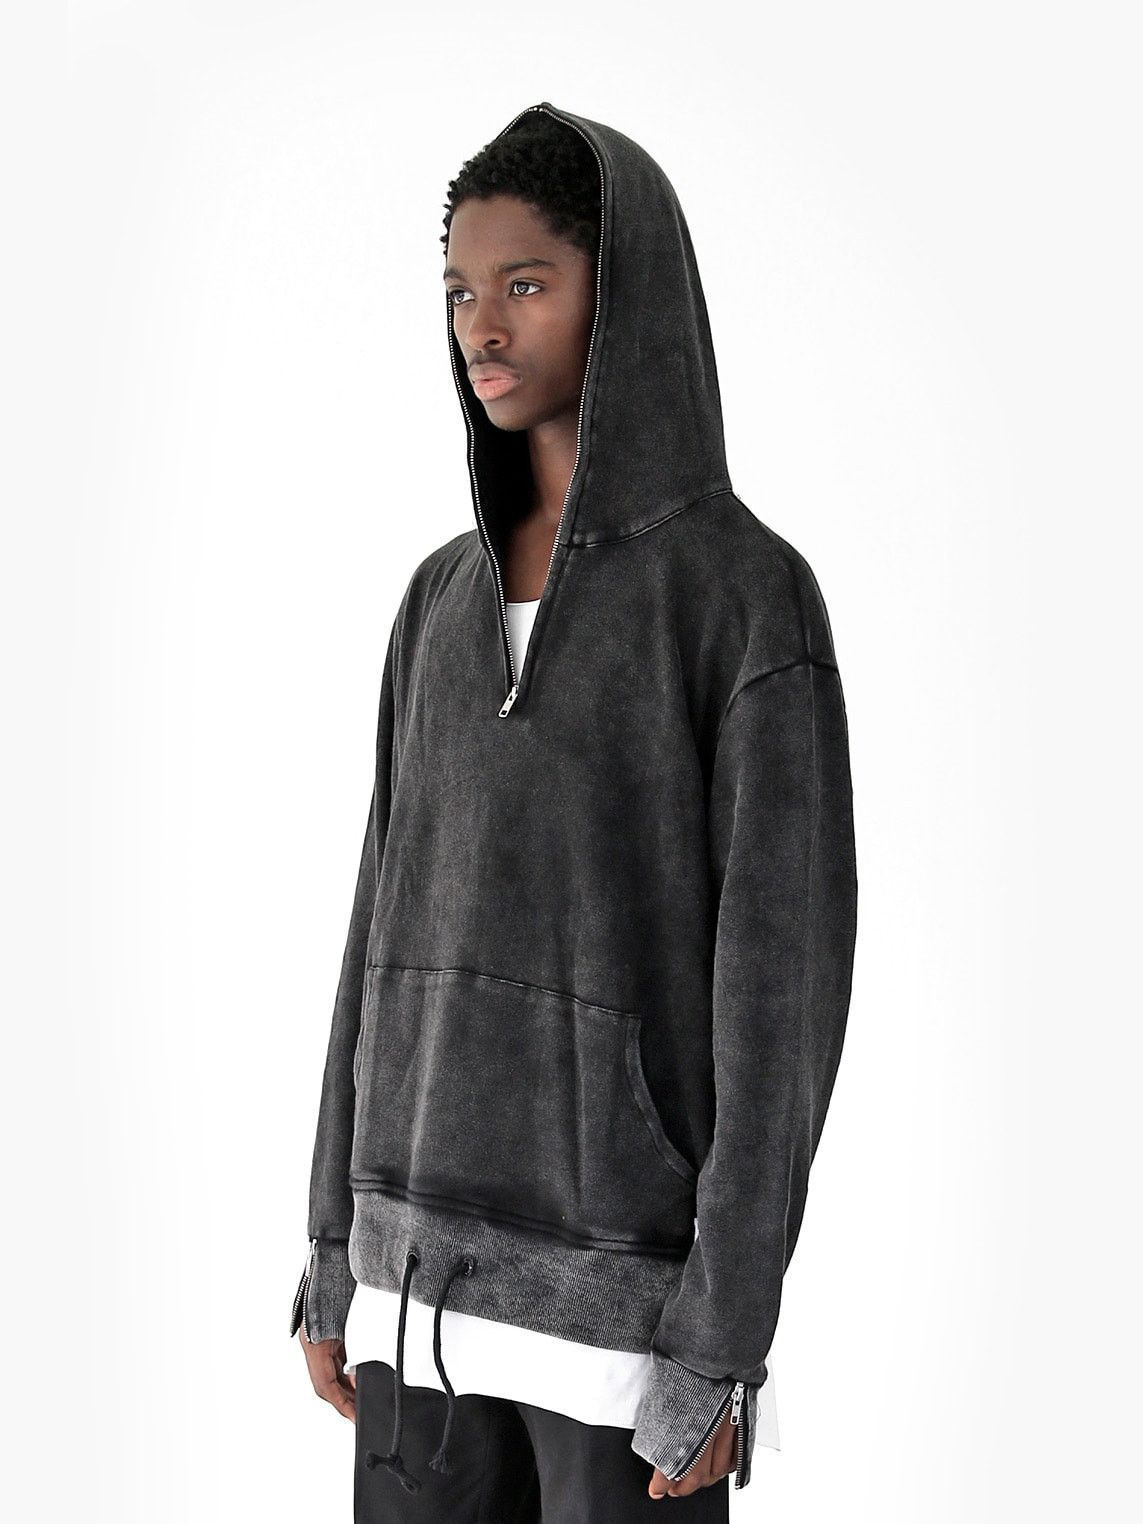 Pigment Washed Full Neck Zip Up Hoodie In Faded Black Hoodies Full Zip Hoodie Black Zip Ups